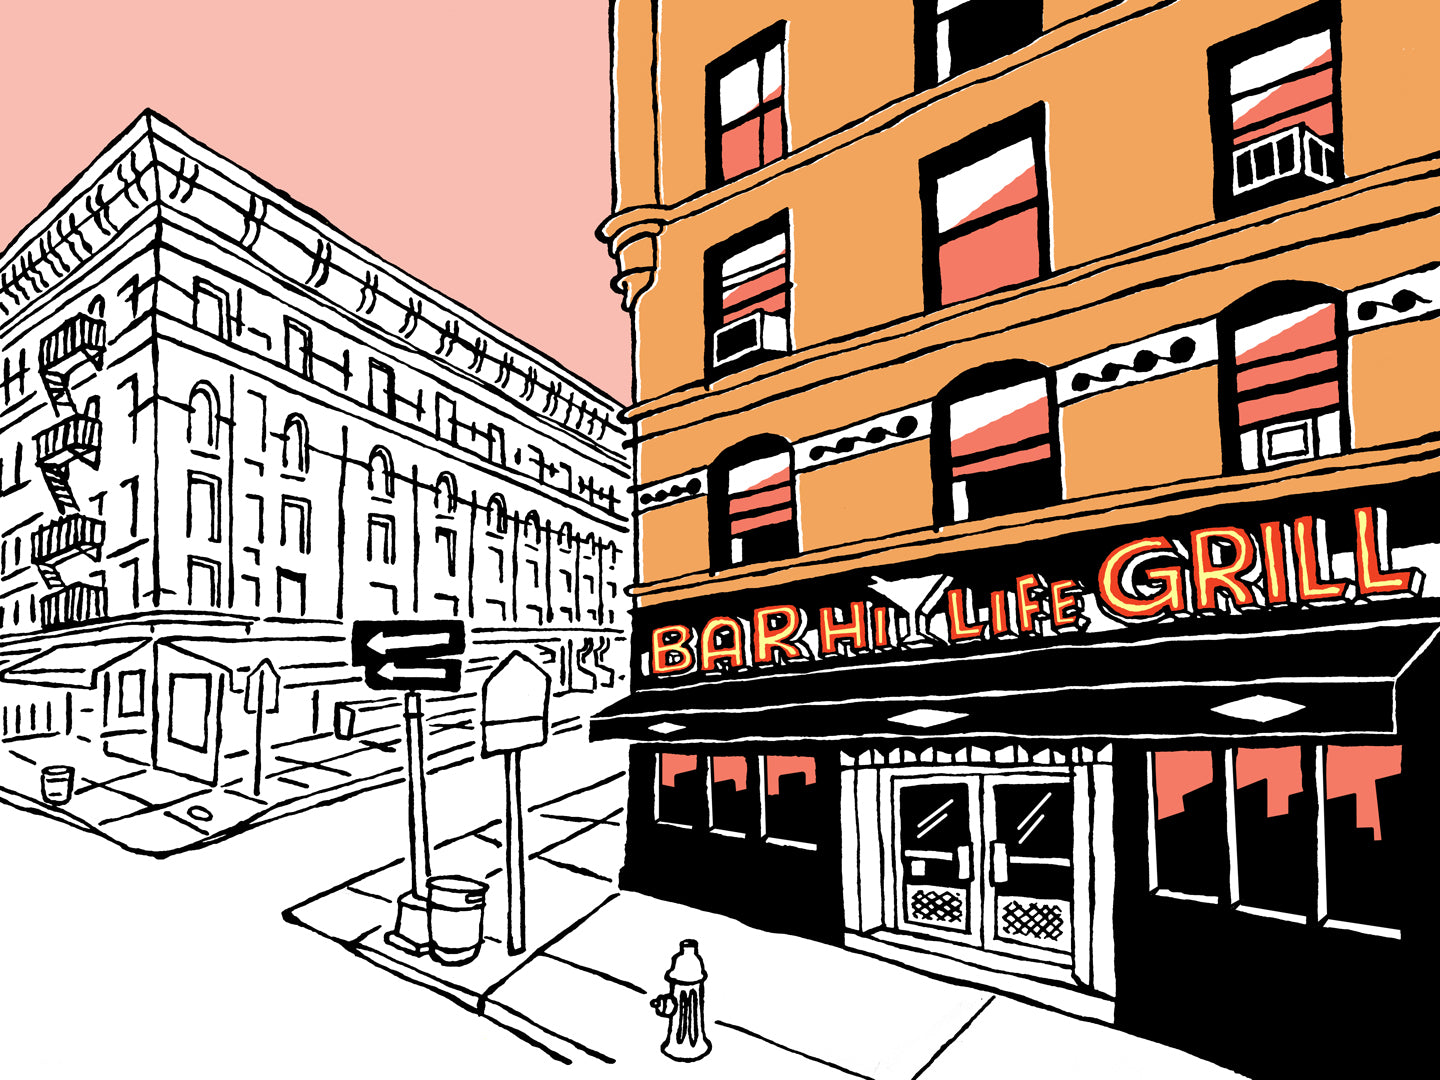 The Hi-Life Bar & Grill of New York signed prints